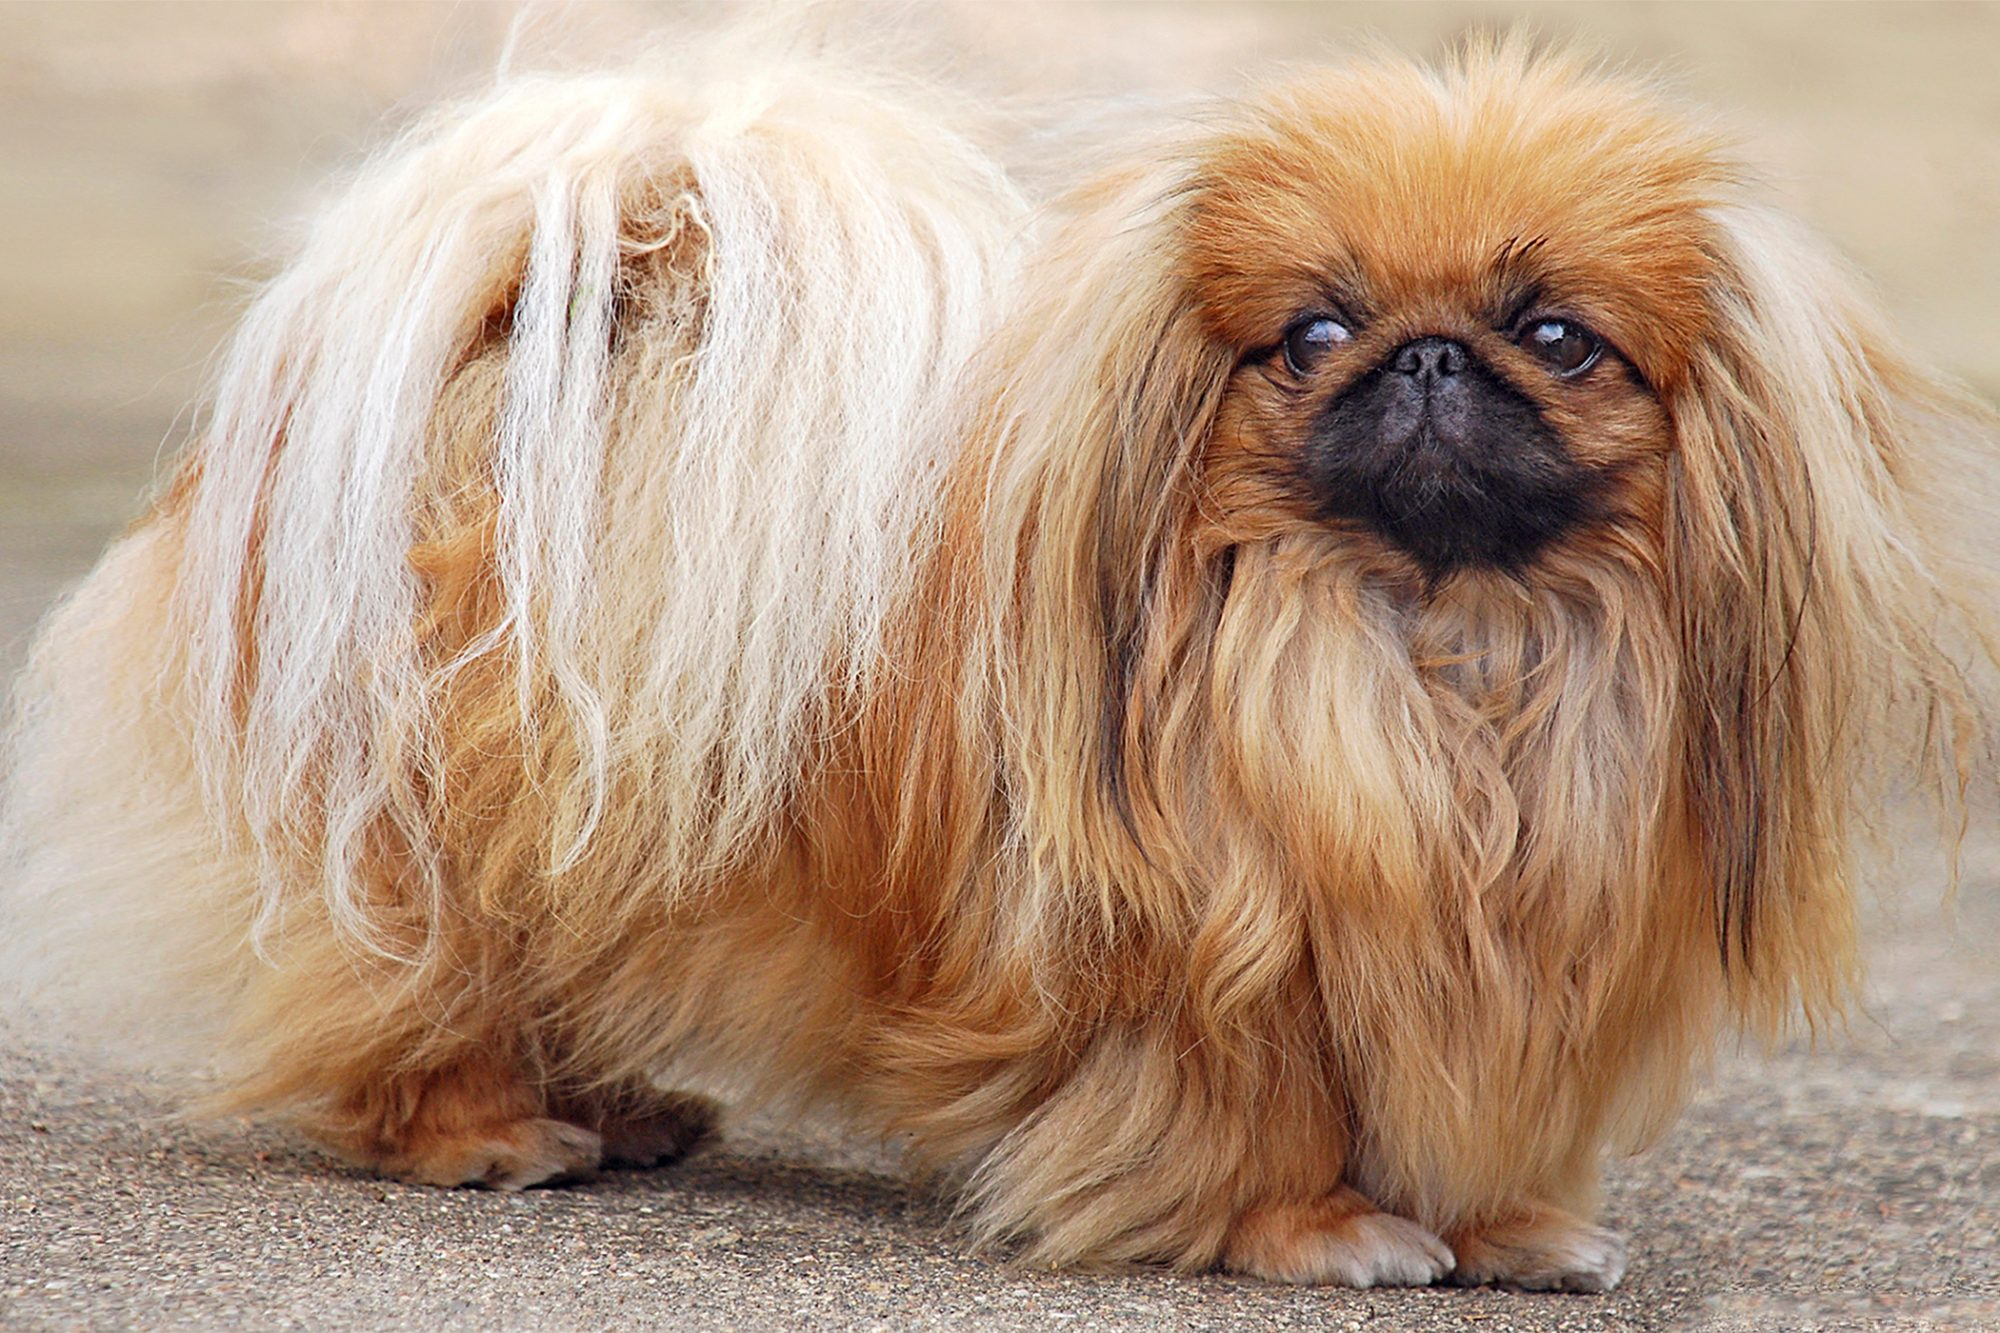 full body profile of a Pekingese with long brown fur standing on a sidewalk